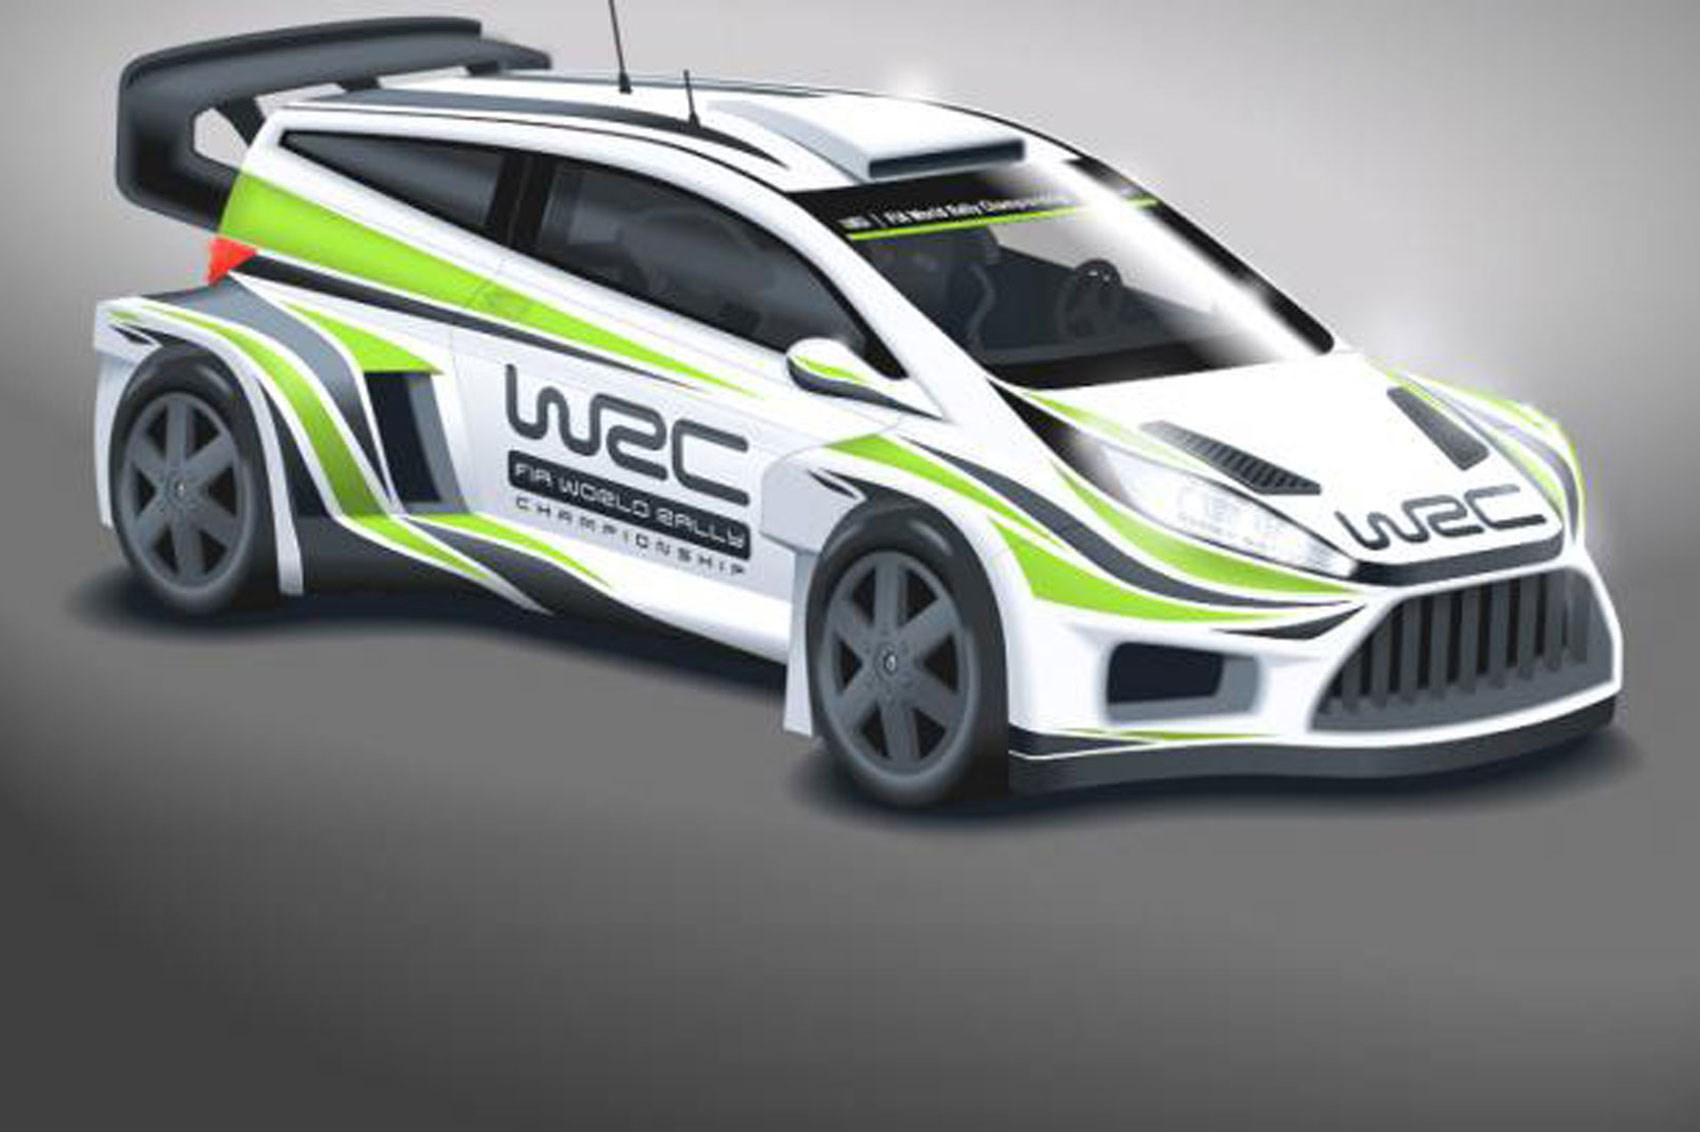 Ultrablogus  Remarkable Wild New Look For Wrc Cars In  By Car Magazine With Remarkable Wrc Cars Will Get Wider Bodies Bigger Wings And More Power For  With Divine Mustang Fox Body Interior Also  Silverado Interior In Addition Lexus Saddle Interior And Fiesta Interior Light As Well As Interior Car Led Strip Lights Additionally Caprice Classic Interior From Carmagazinecouk With Ultrablogus  Remarkable Wild New Look For Wrc Cars In  By Car Magazine With Divine Wrc Cars Will Get Wider Bodies Bigger Wings And More Power For  And Remarkable Mustang Fox Body Interior Also  Silverado Interior In Addition Lexus Saddle Interior From Carmagazinecouk